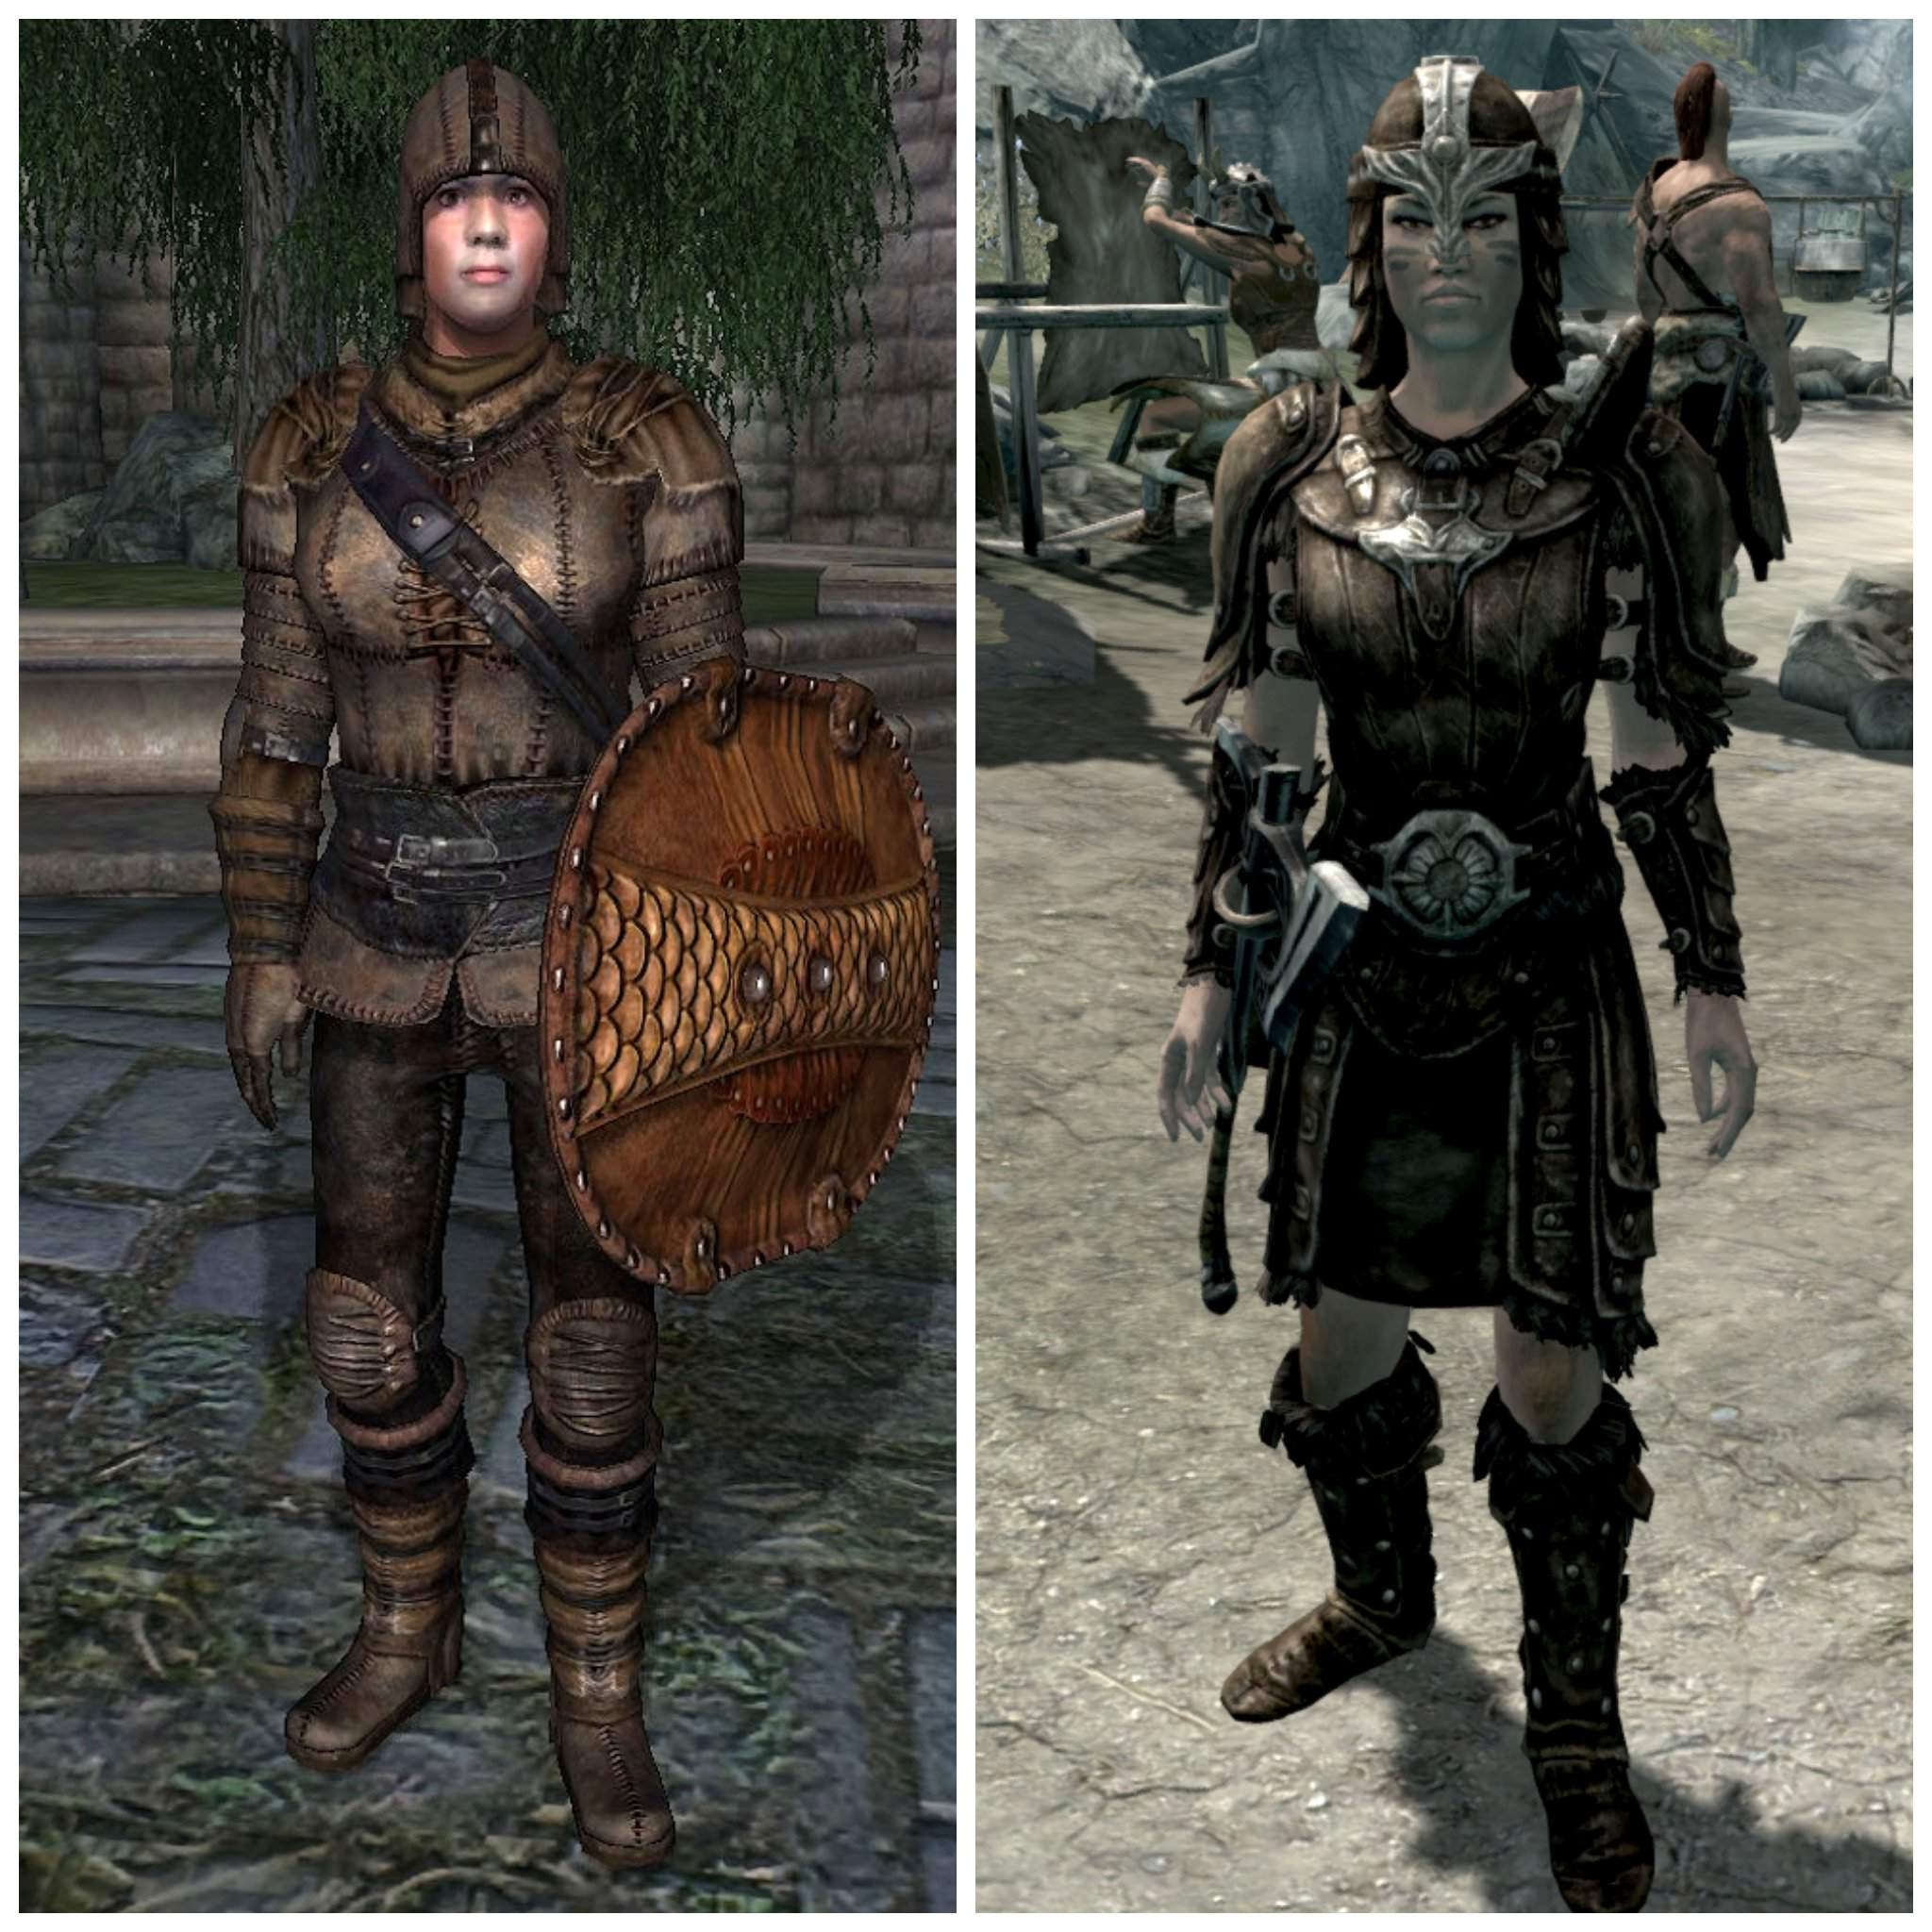 Comparing The Oblivion Armor Sets To The Skyrim Armor Sets Tamriel Elder Scrolls Amino Amino A video showing you how to activate the quest and how to find the armor imperial dragon armor.don't forget to check out my other channel (silent storm). amino apps